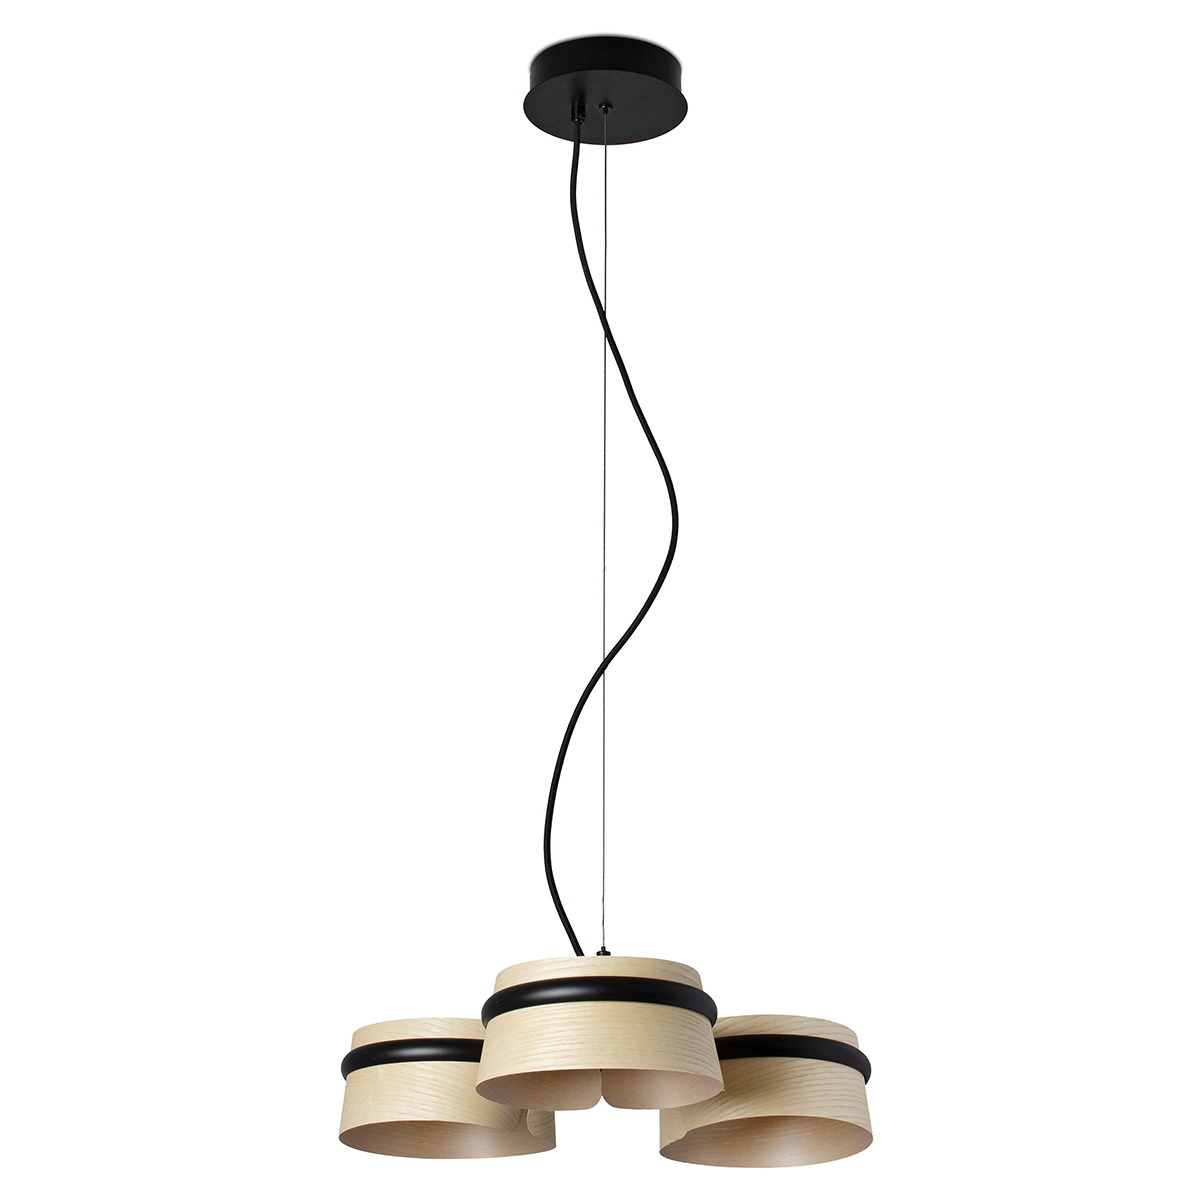 Lustra LED dimabila design deosebit LOOP frasin 29397